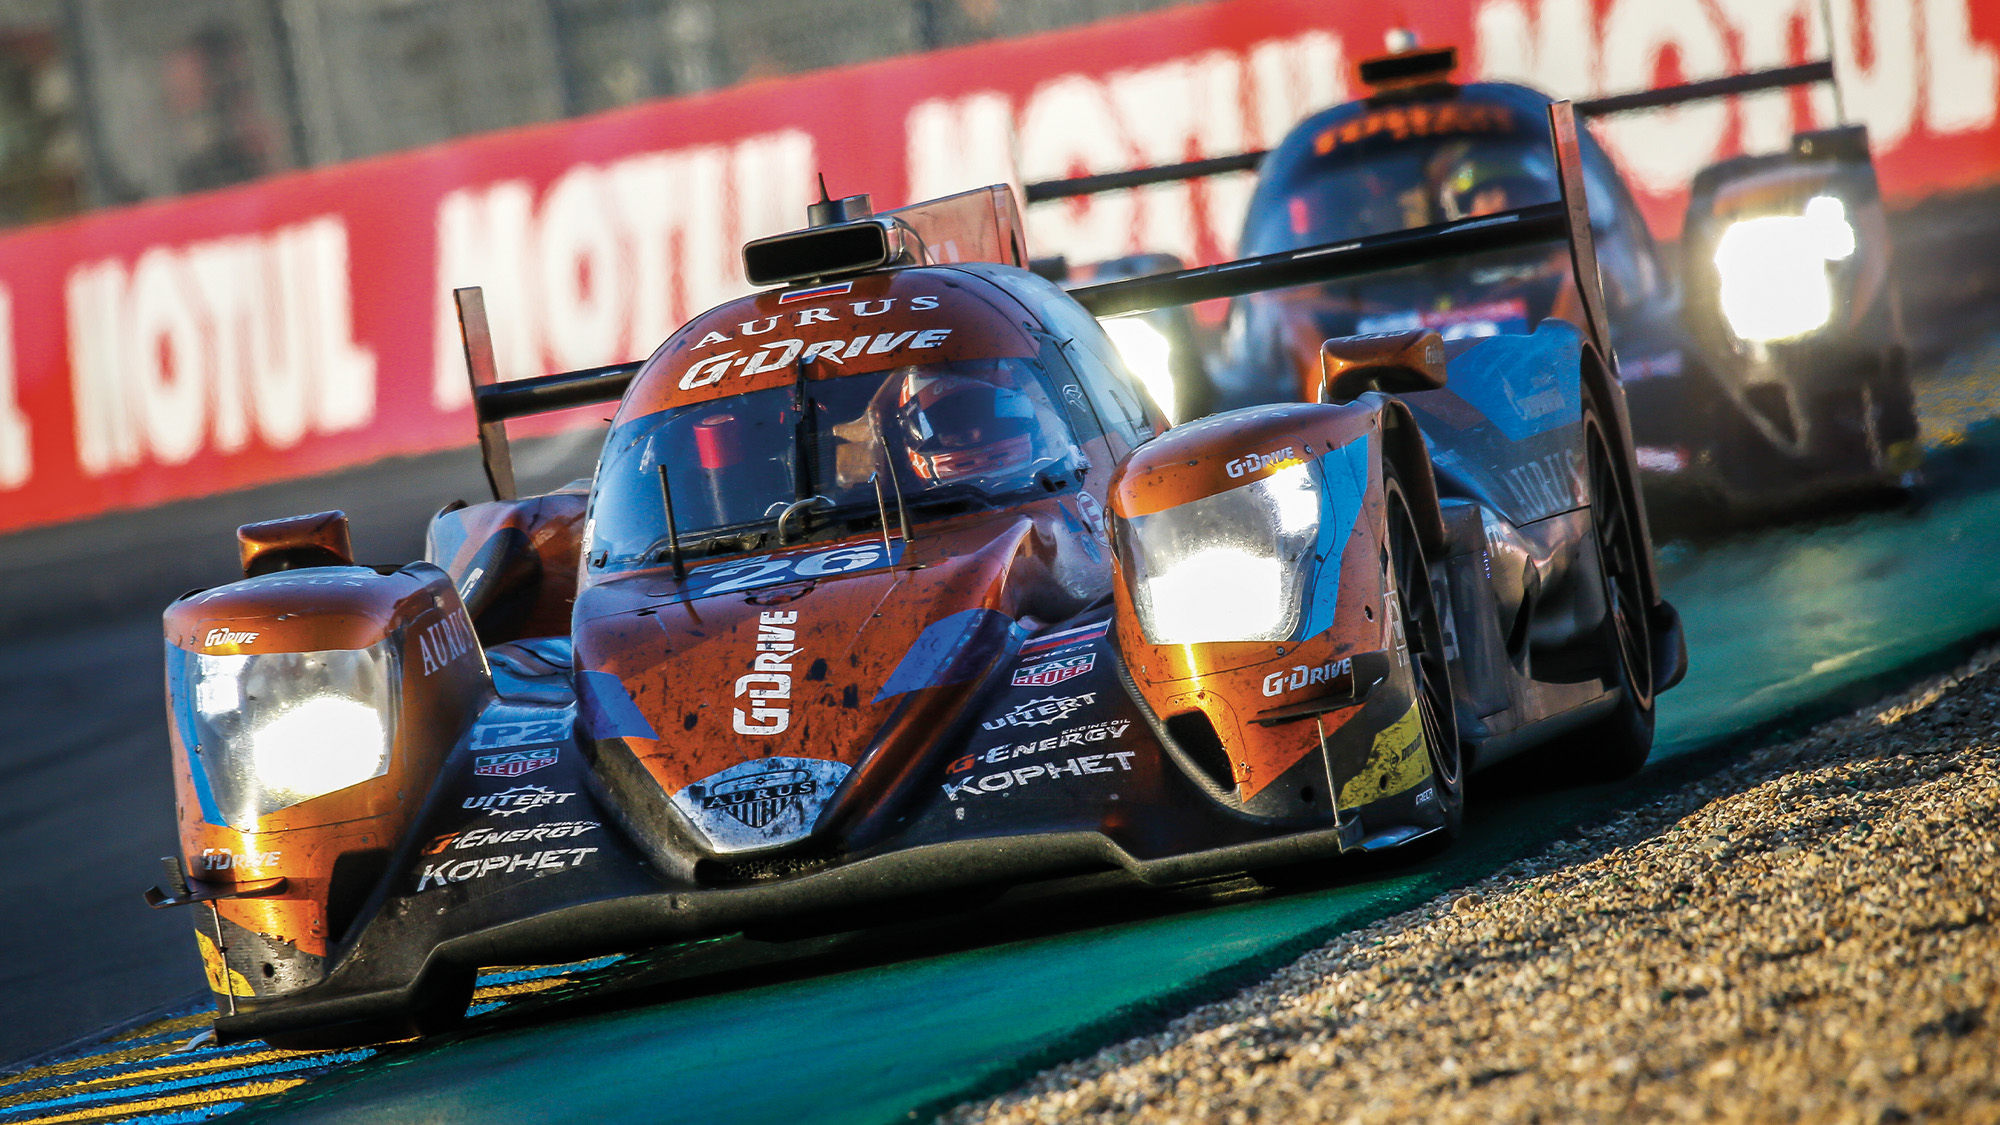 LMP2 cars at the Le Mans 24 Hours